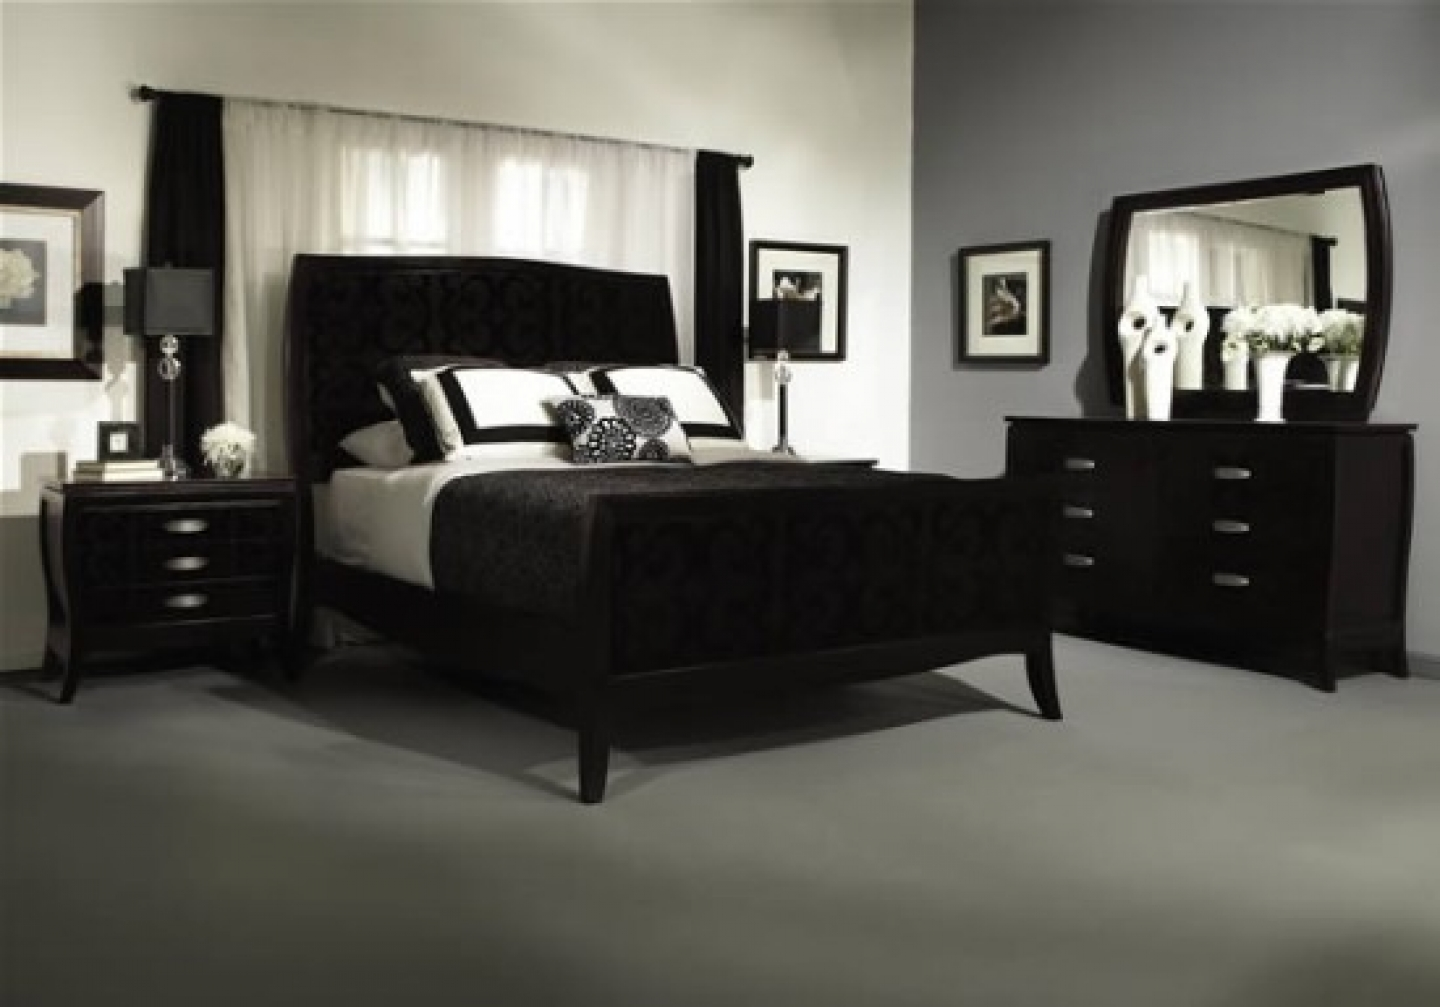 gray bedroom black furniture photo - 3